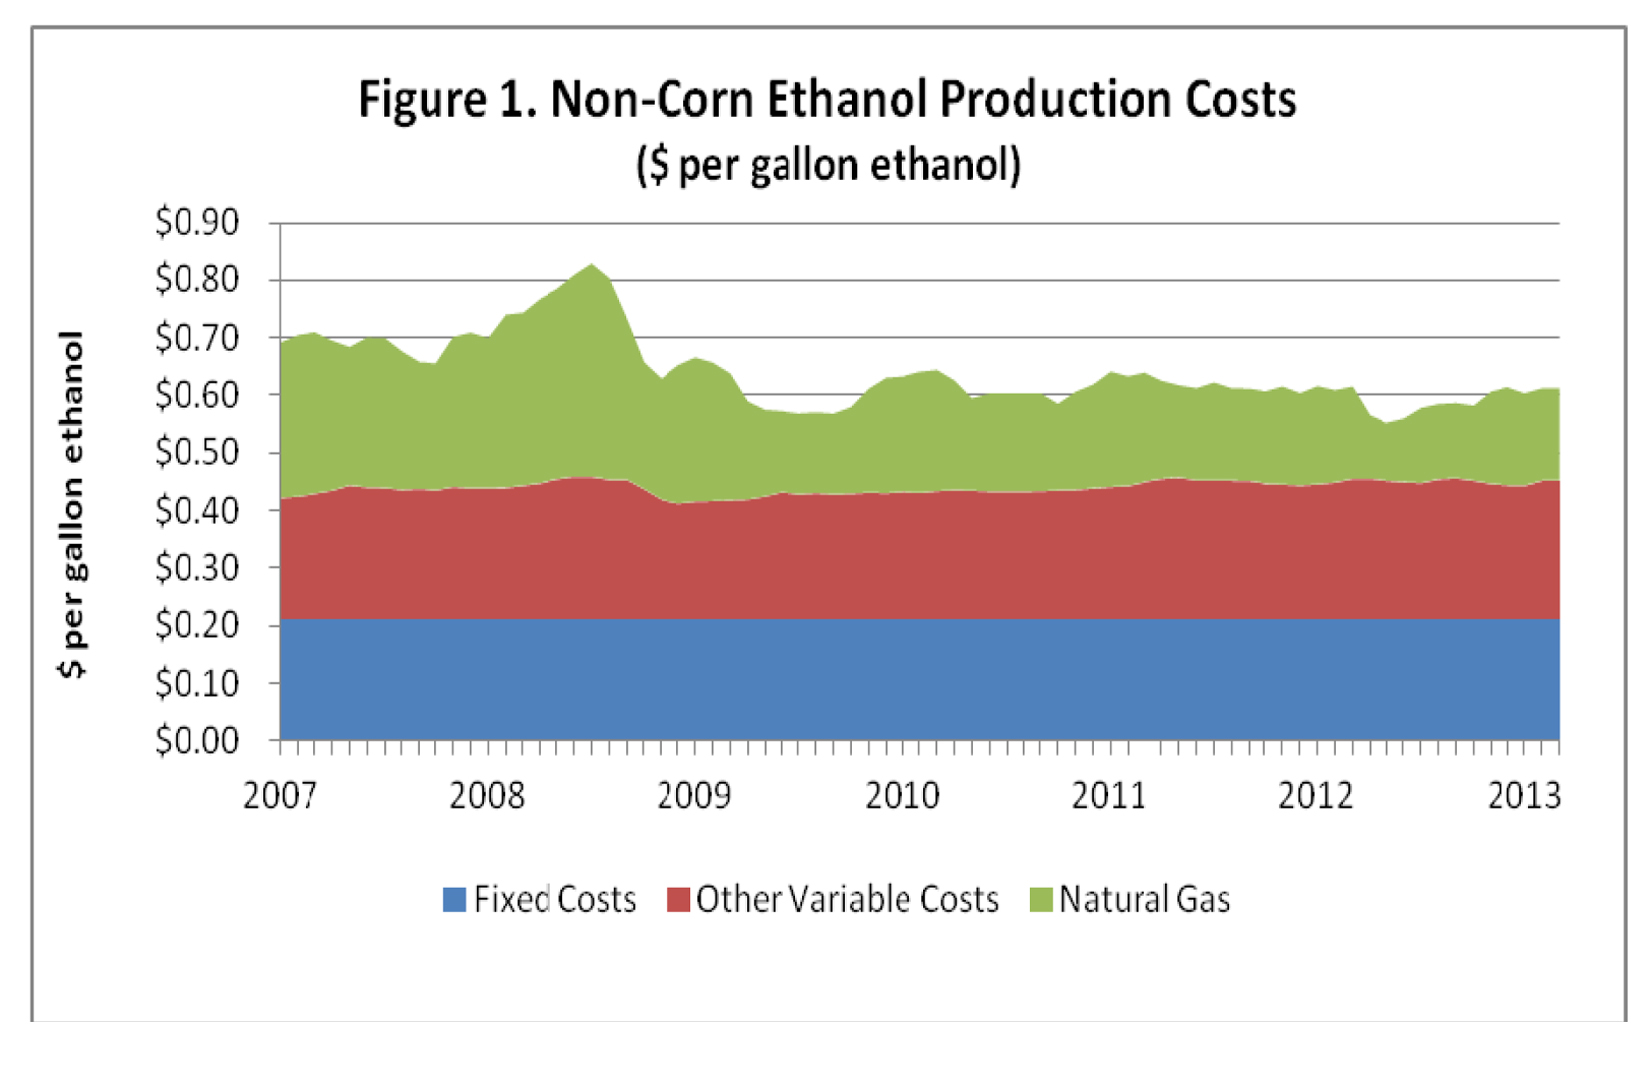 non-corn ethanol production costs